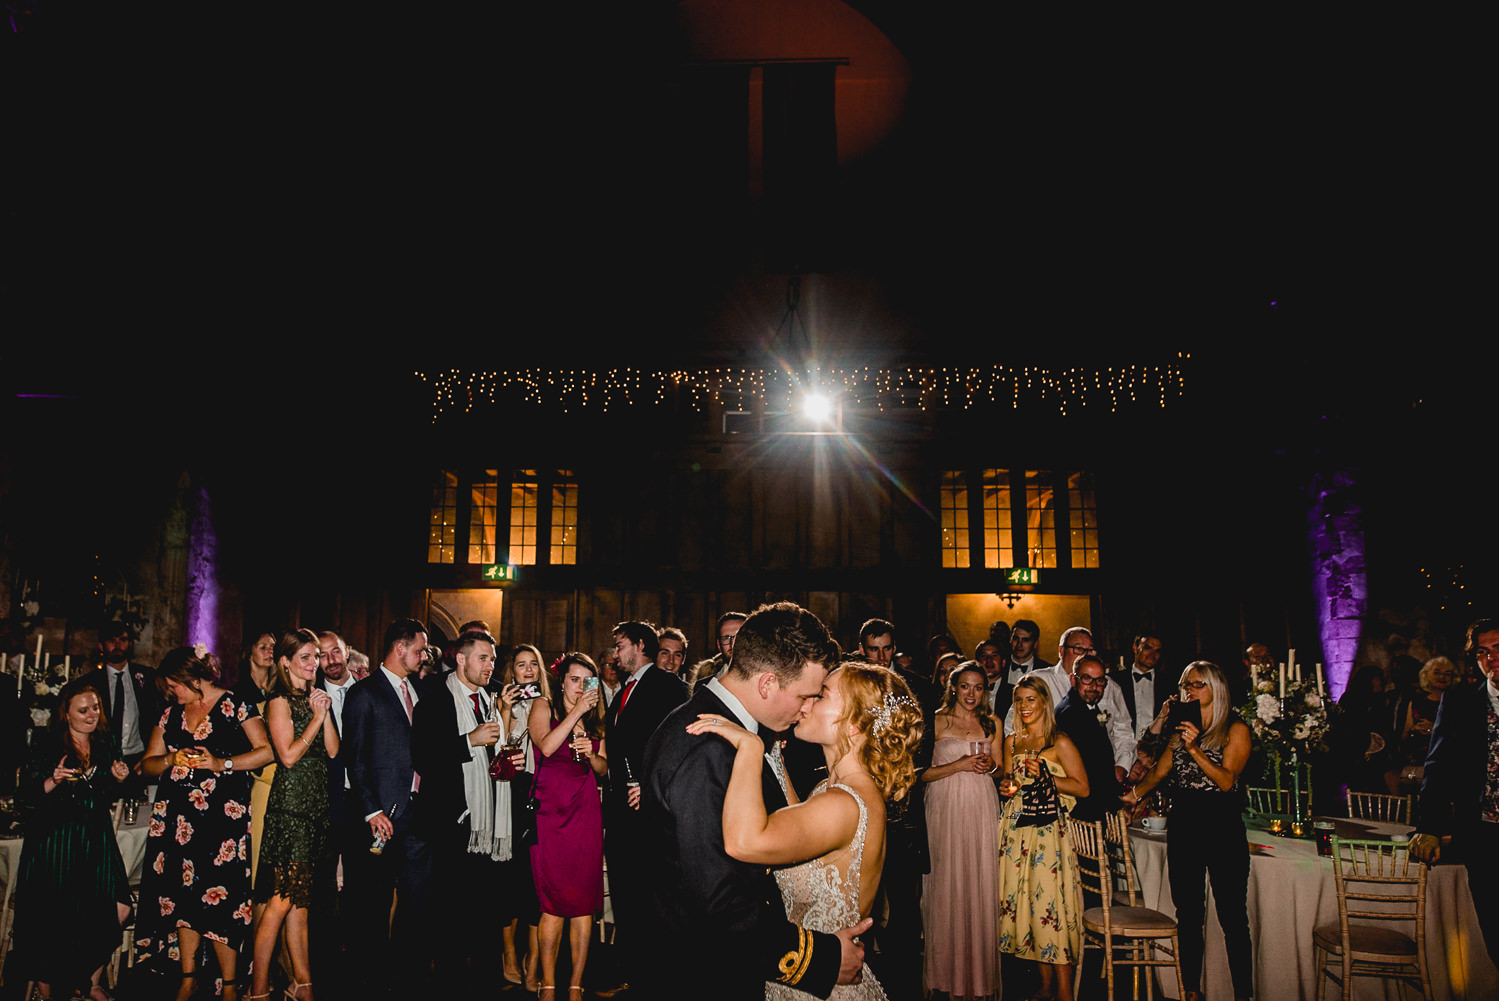 Dancing at Dartington Hall Wedding